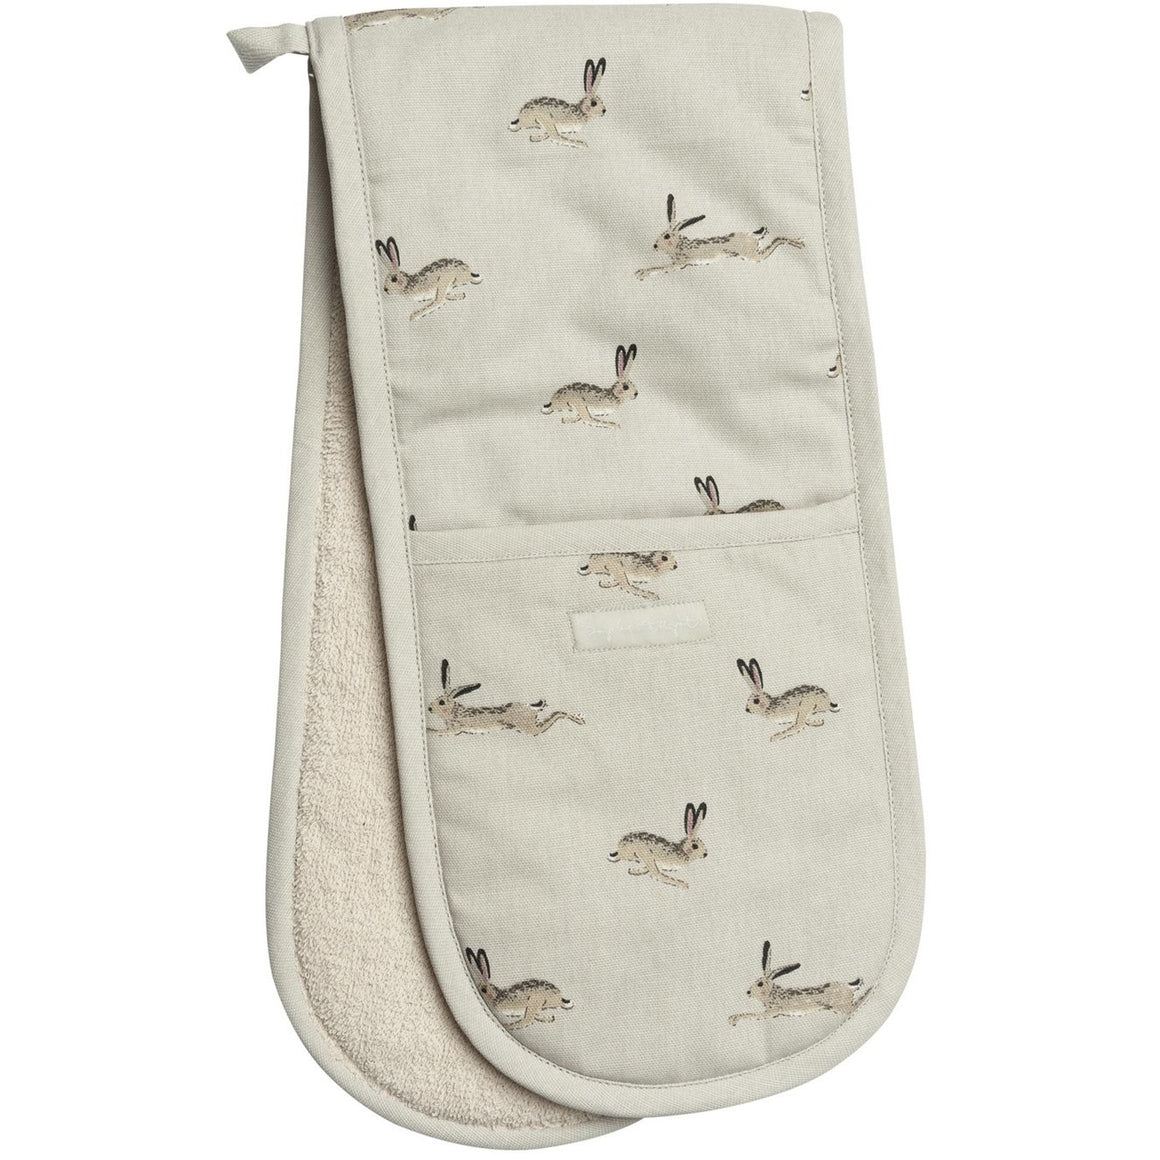 Sophie Allport Hare Double Oven Glove